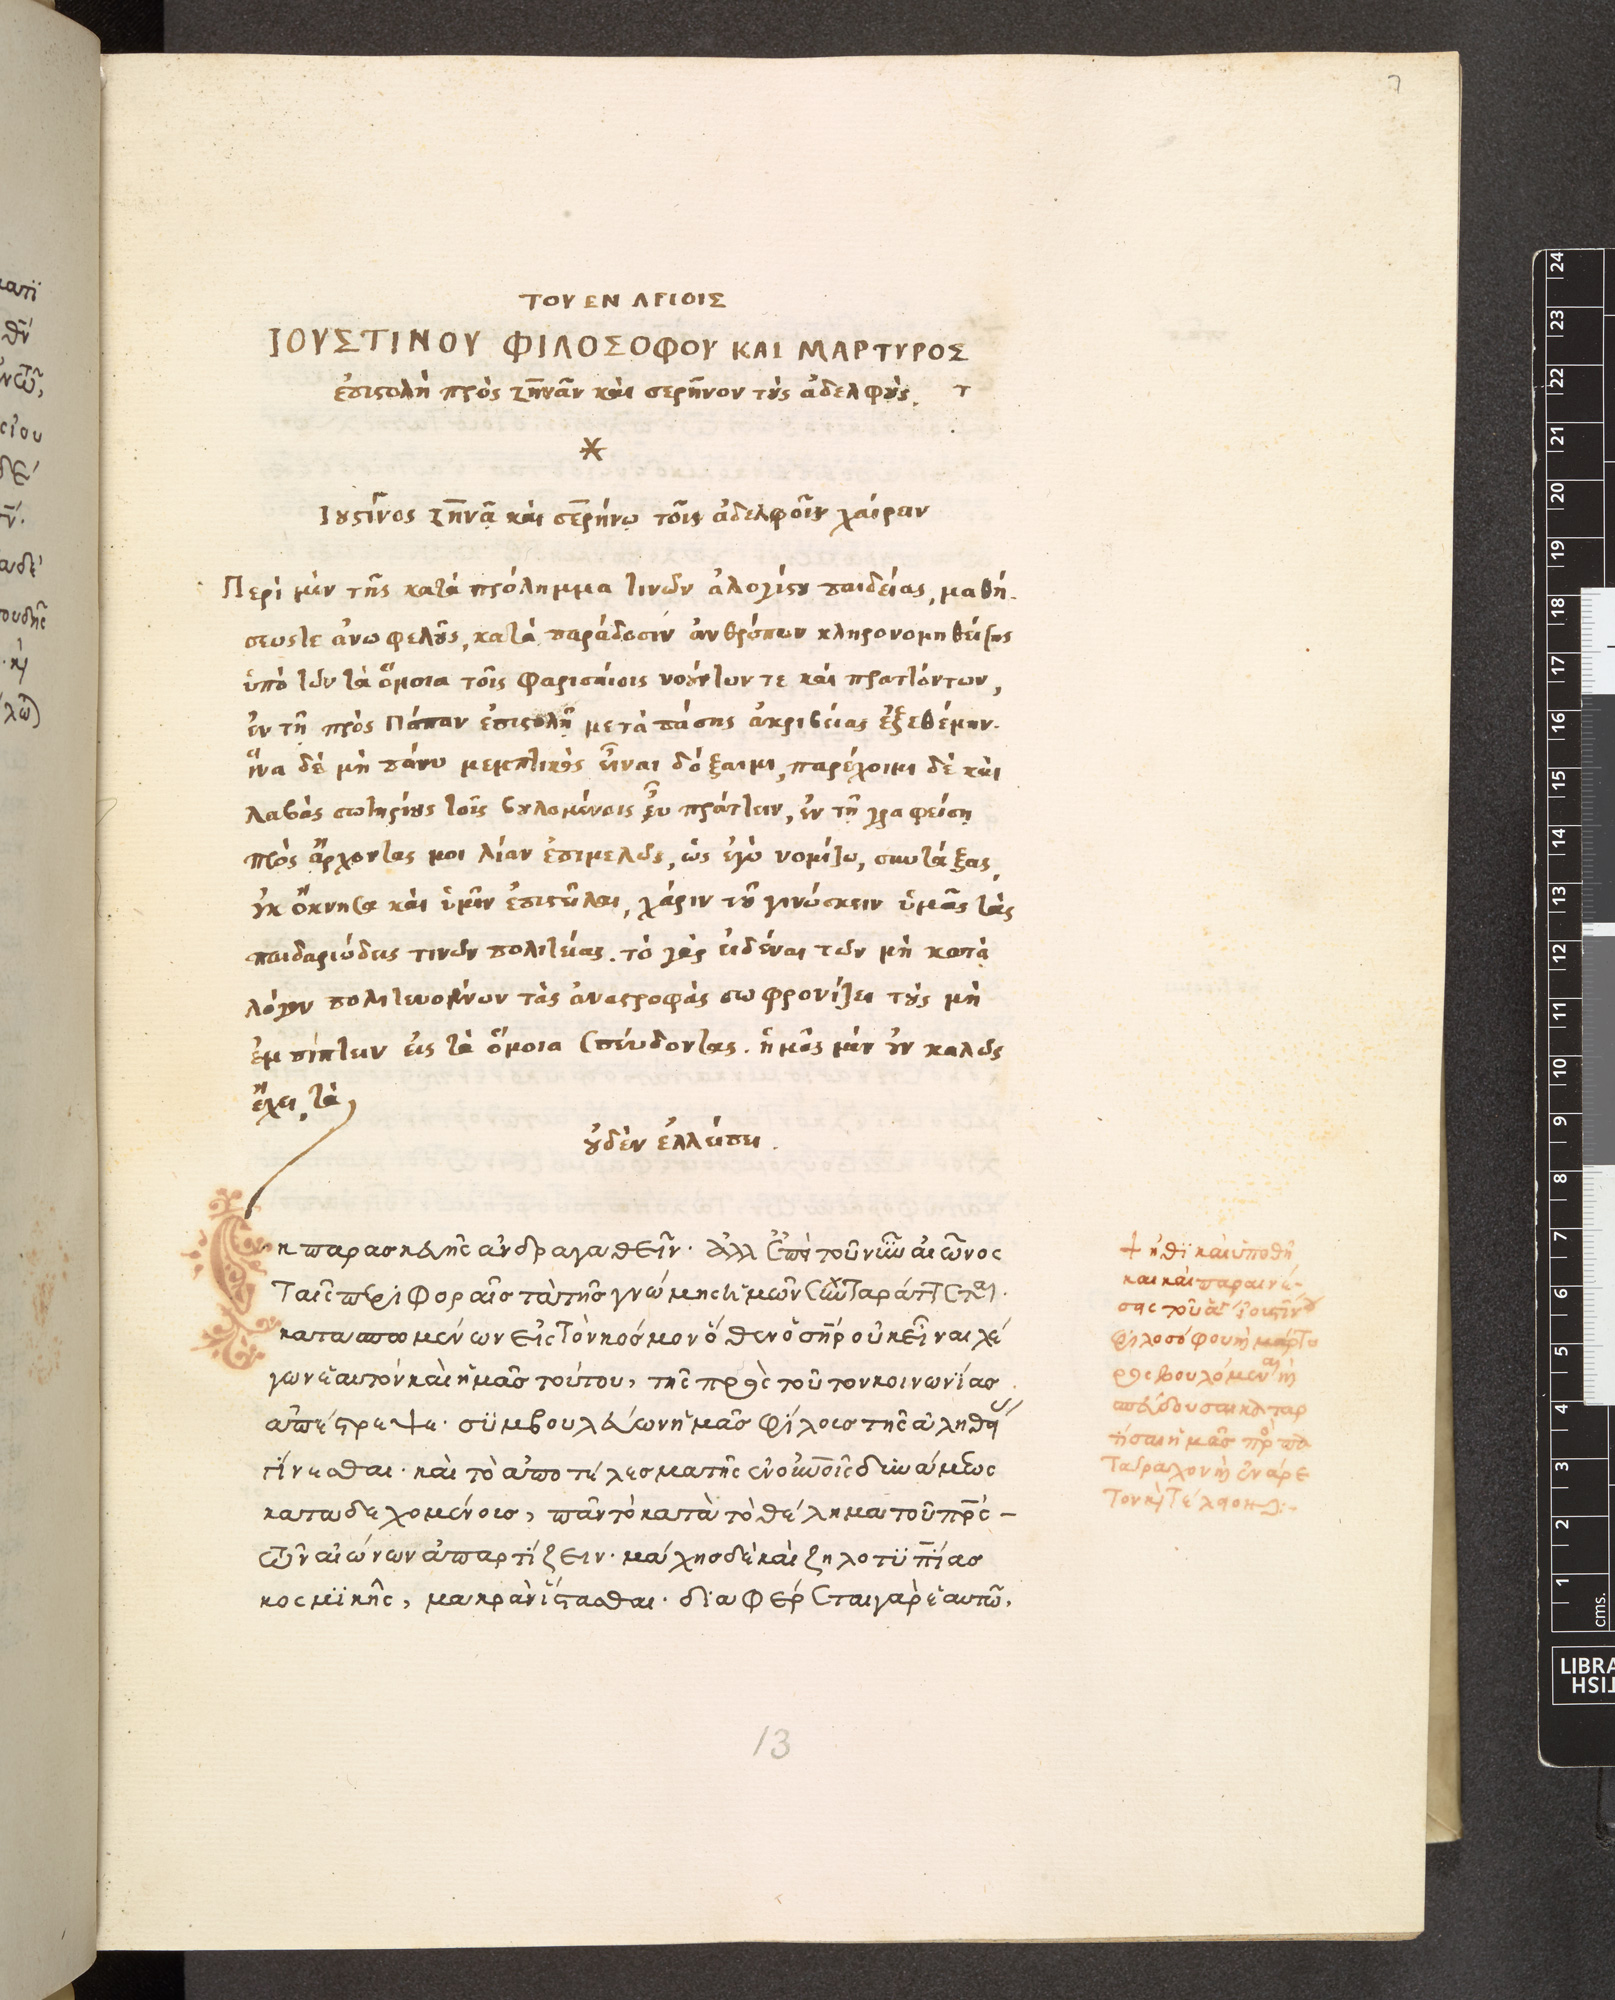 Works of Justin Martyr (Add MS 82951 f007)